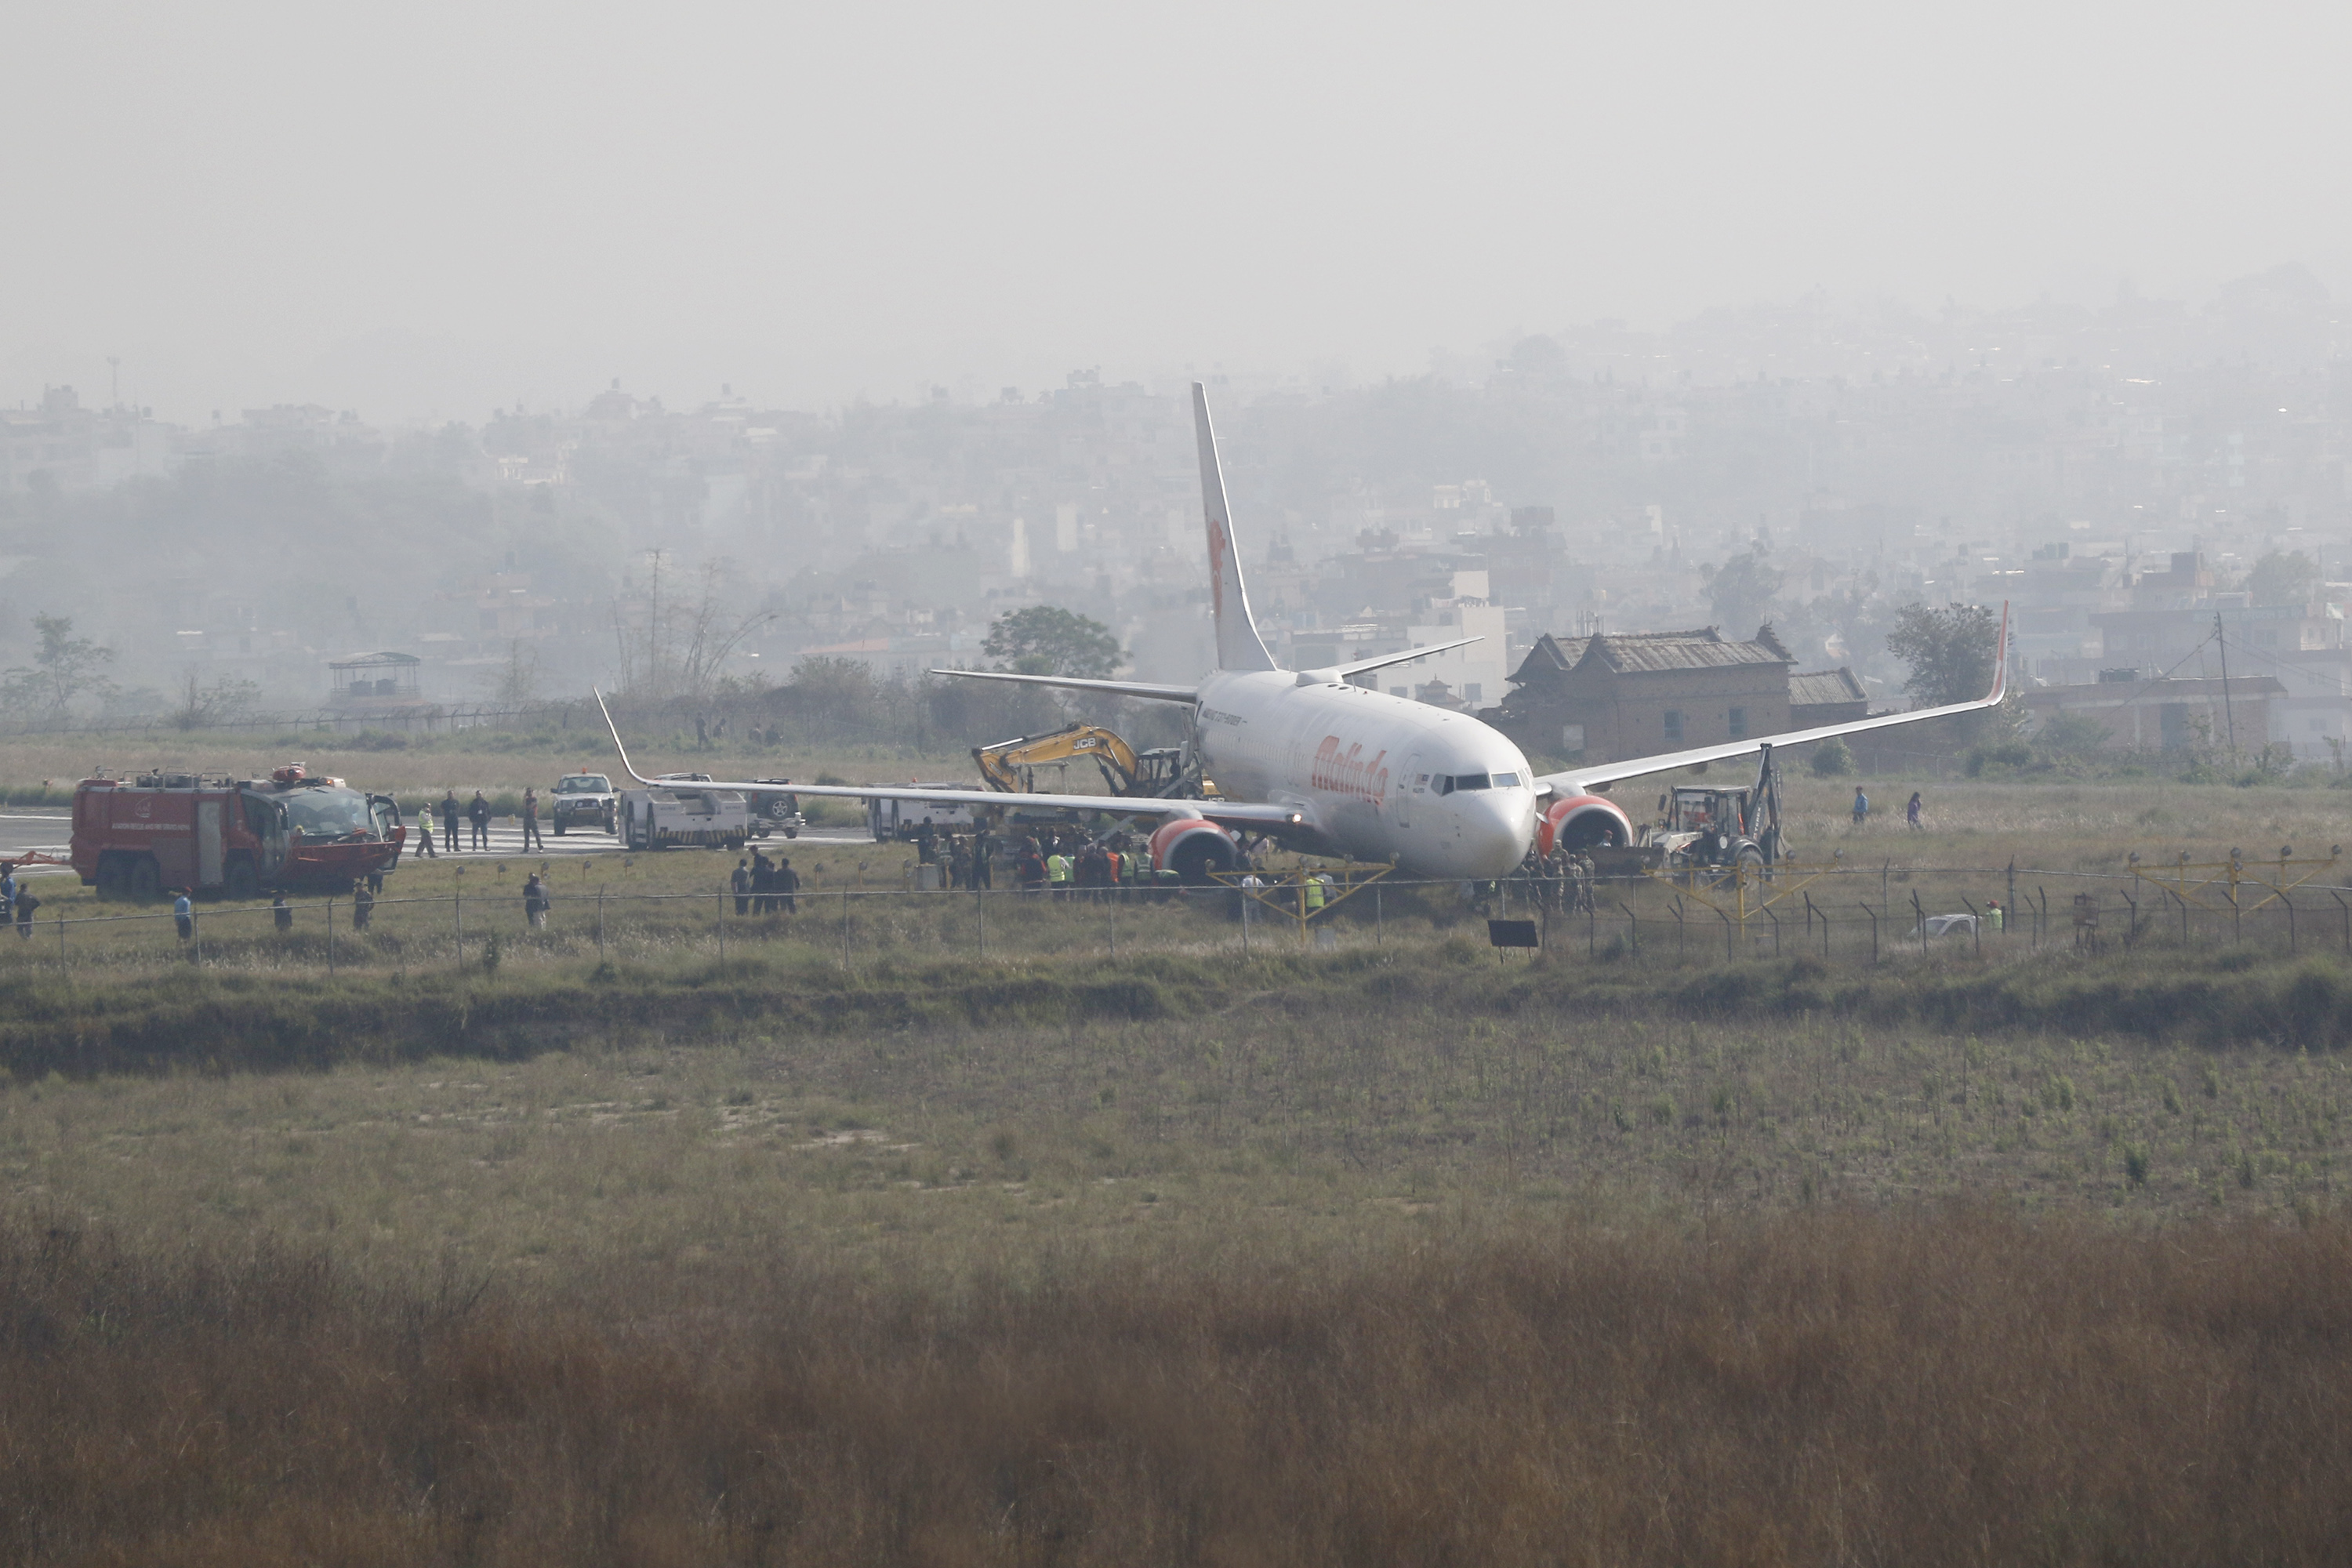 Nepal's Tribhuvan International Airport closed after Malindo Air jet skids off runway